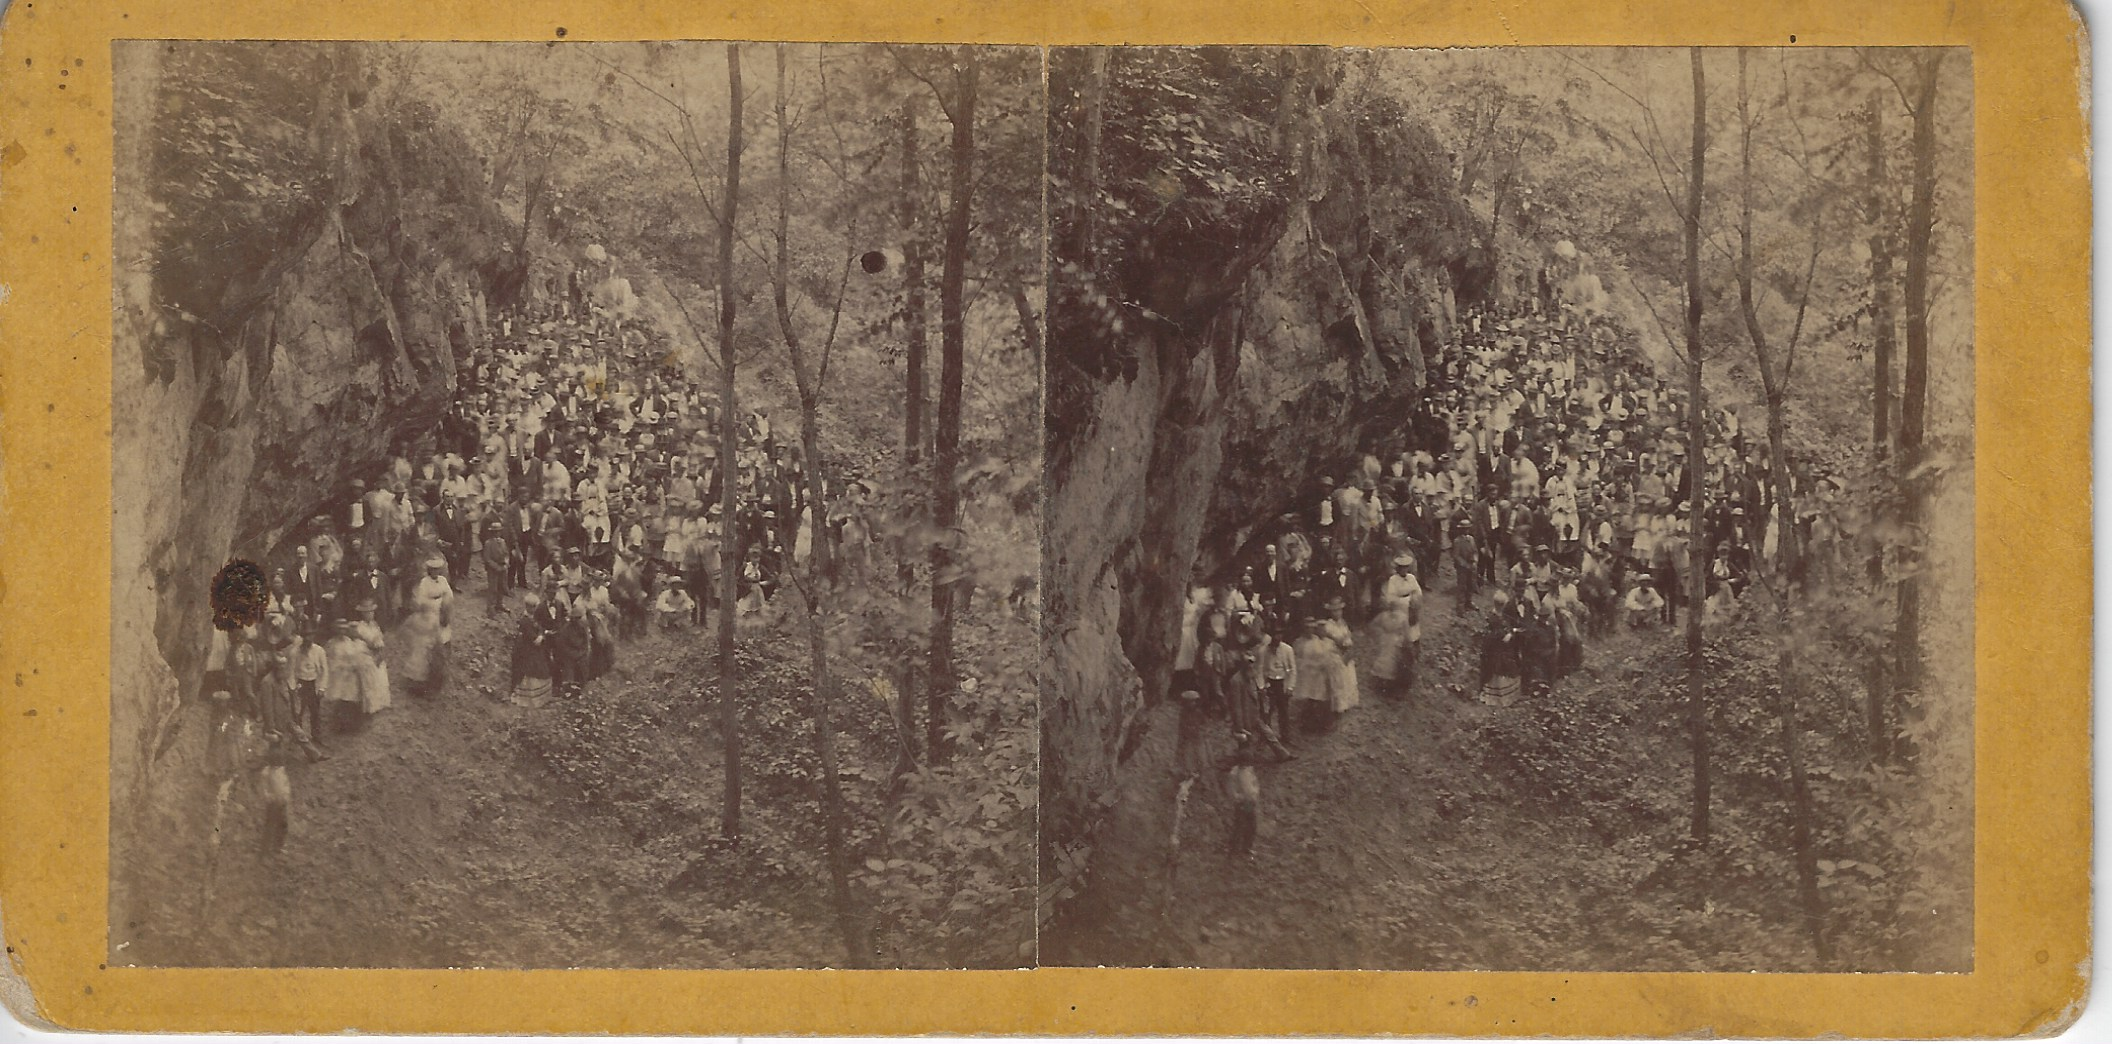 LJTP 100.260 - S. Root SAR - Picture Rock north of Dubuque - c1870